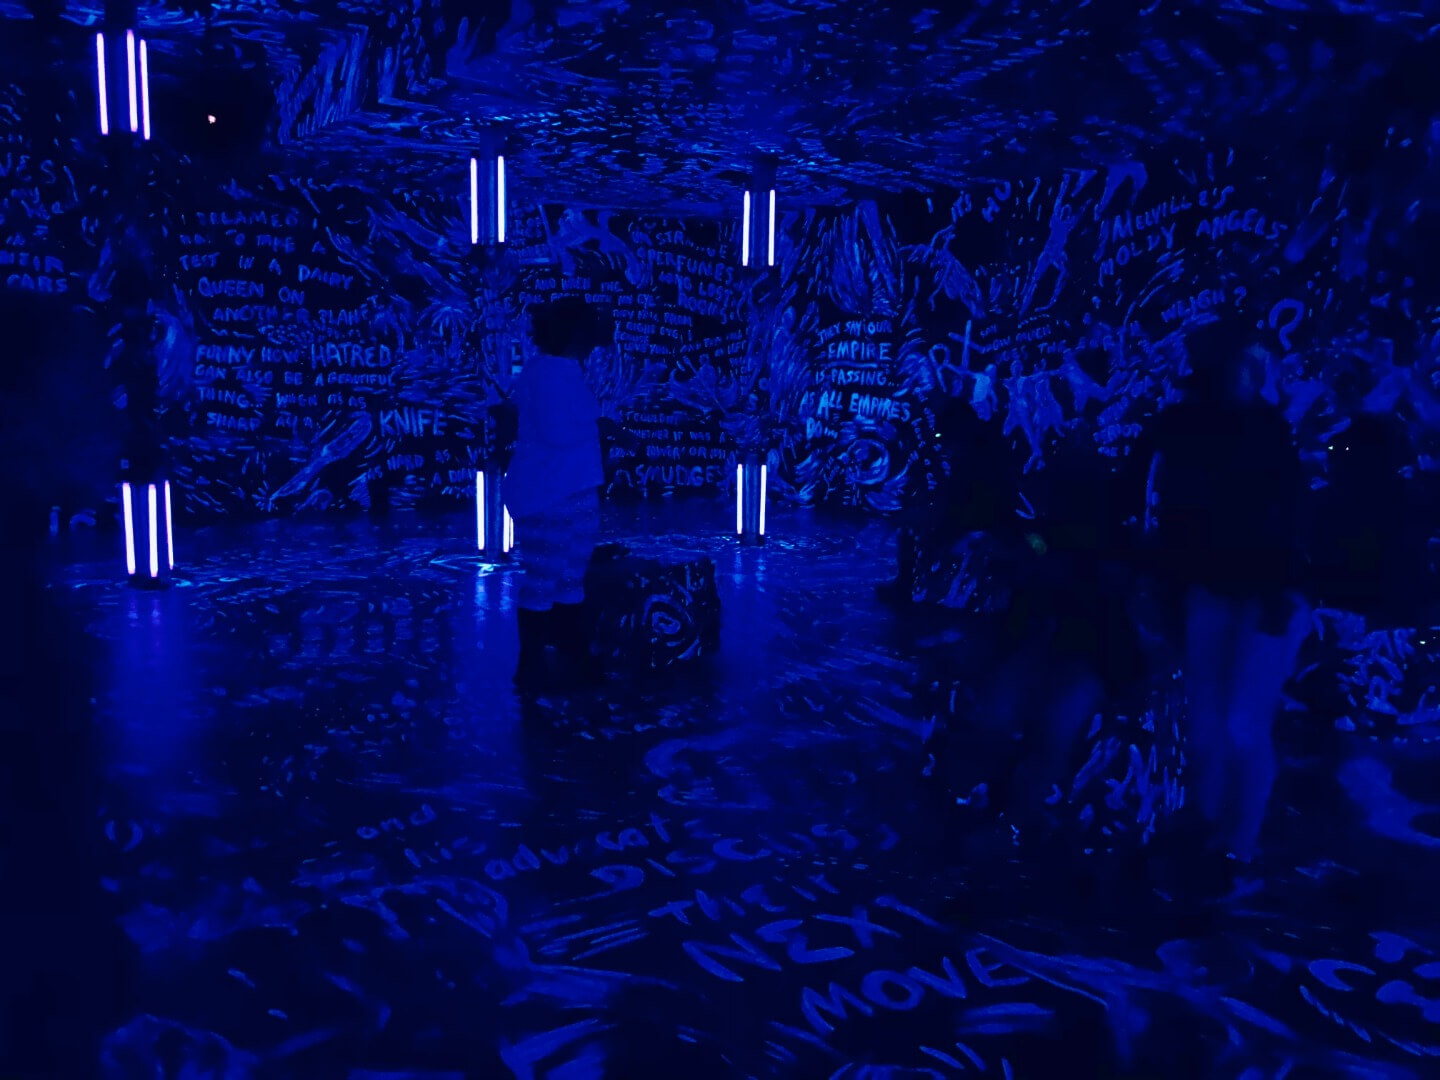 3_Laurie Anderson, The Chalkroon, 2017